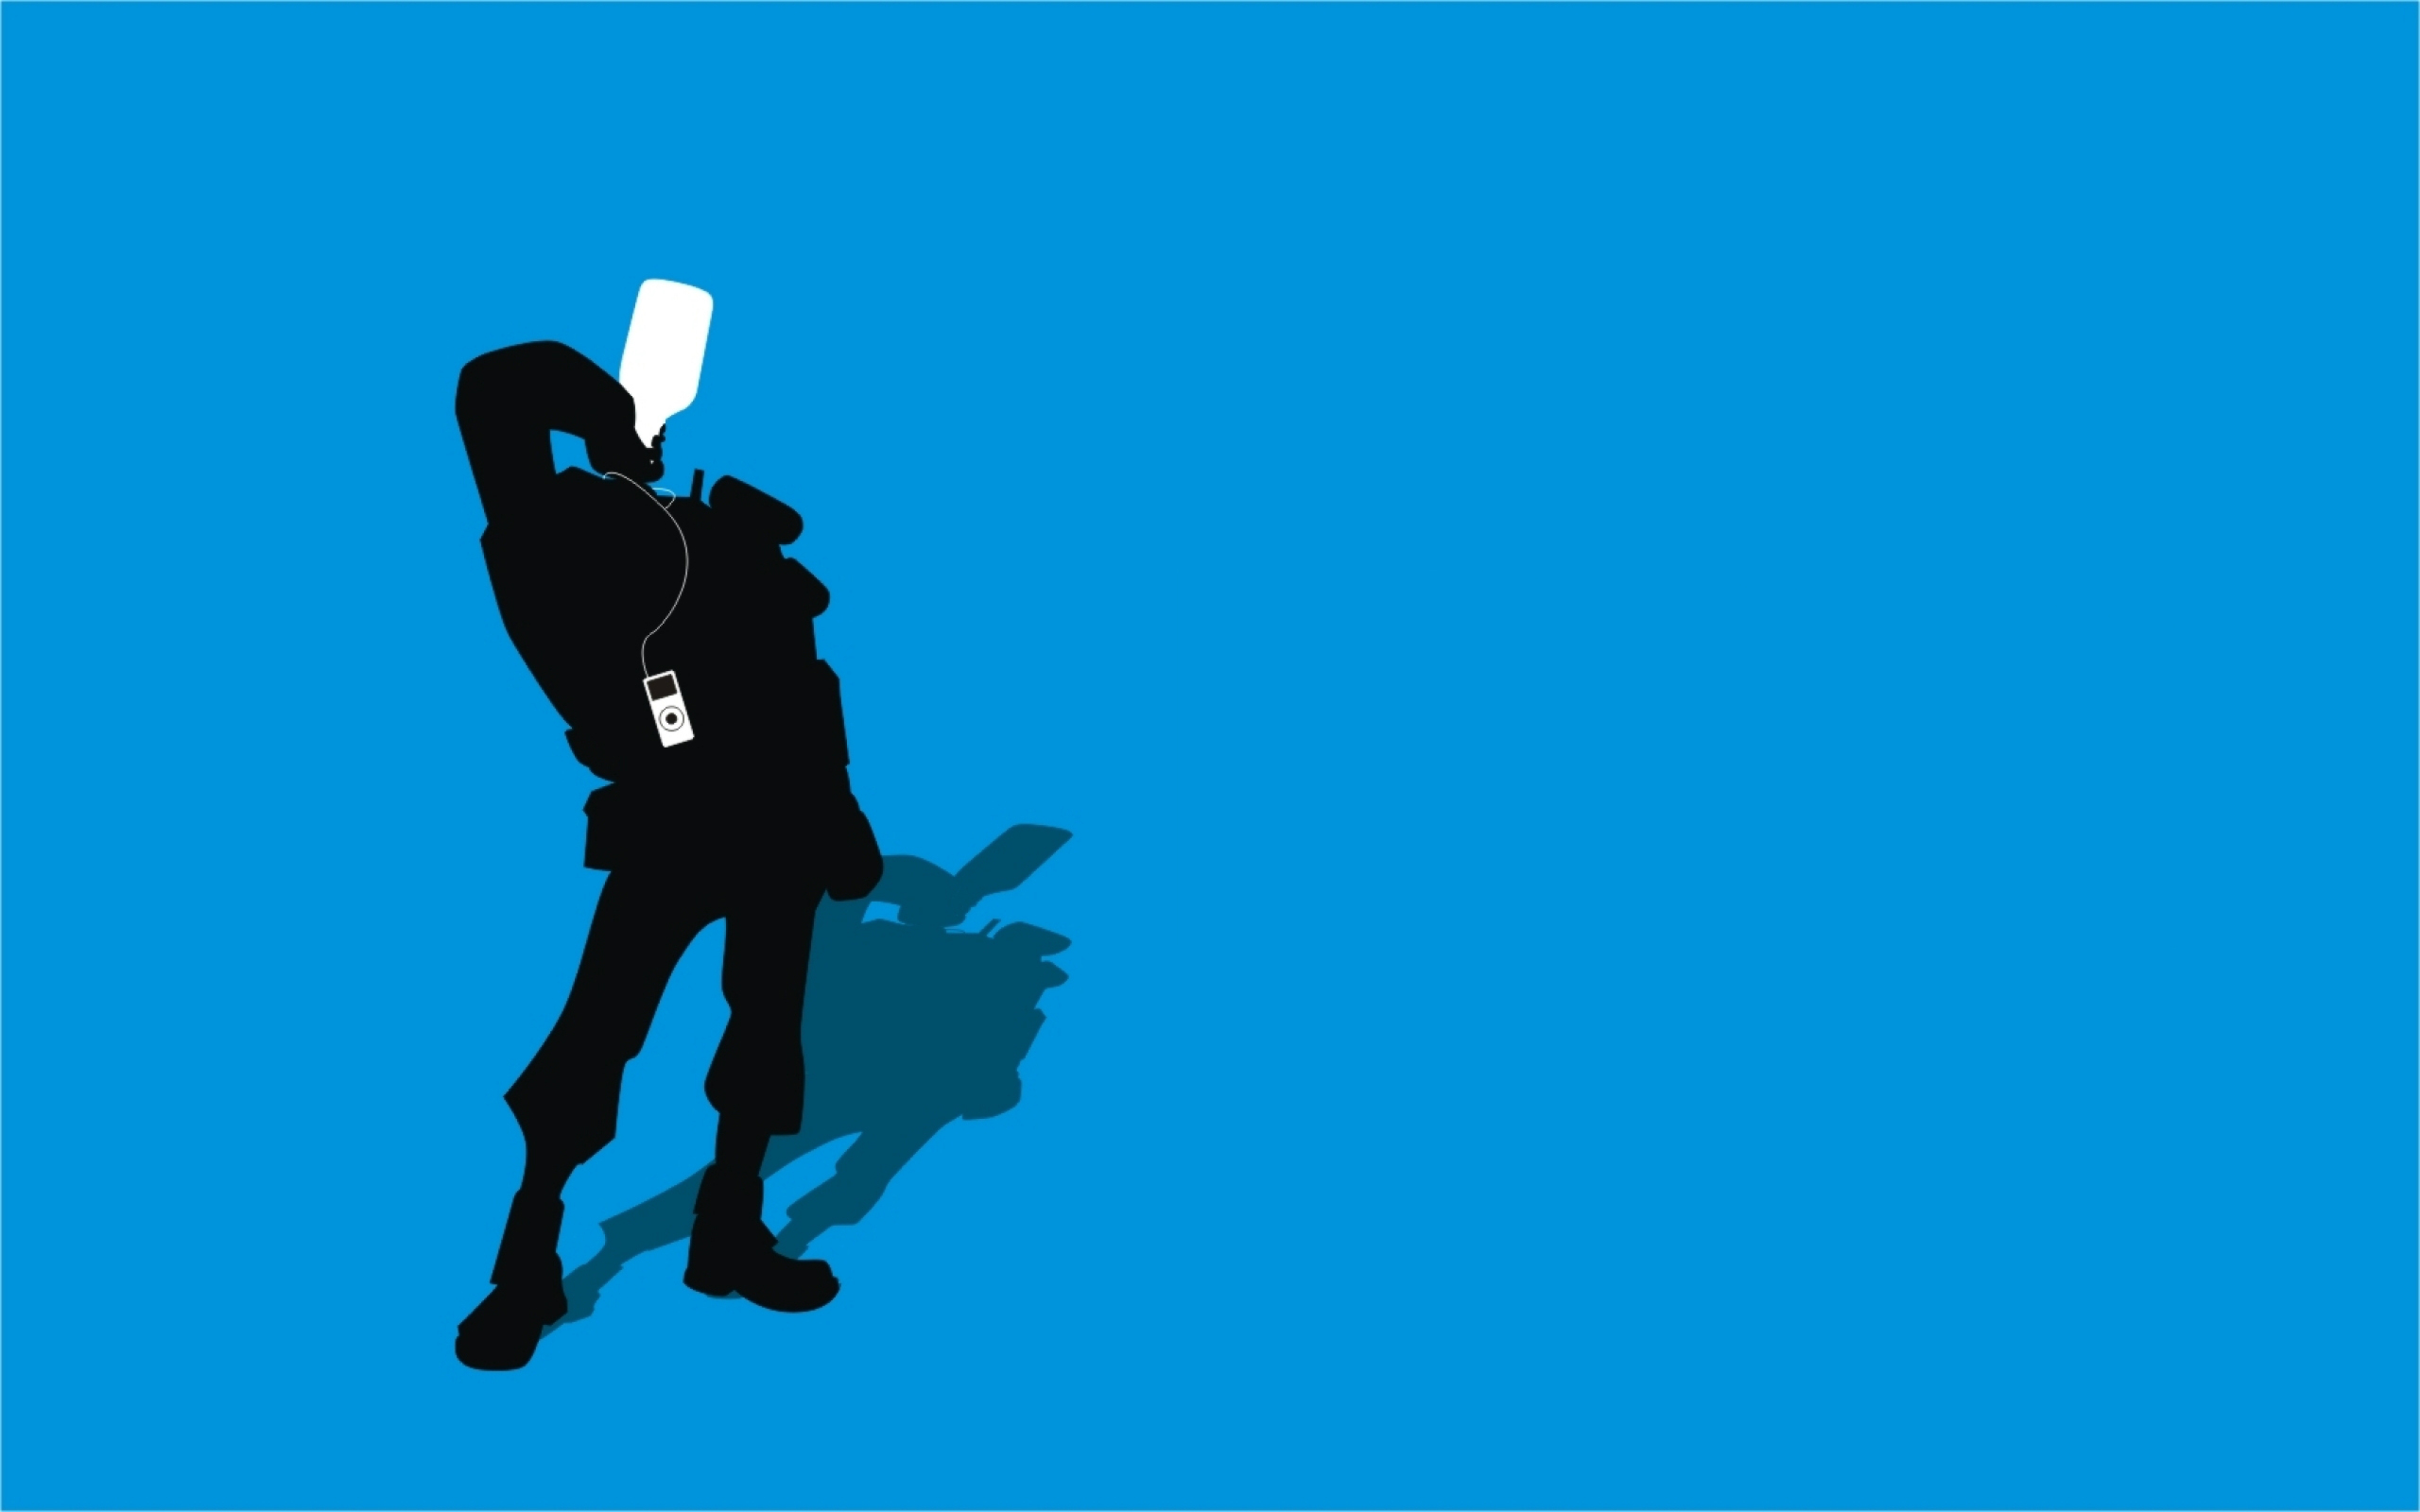 TF2 Blue Demoman Silhouette iPod Earbuds 2560x1600 by cwegrecki on 2560x1600